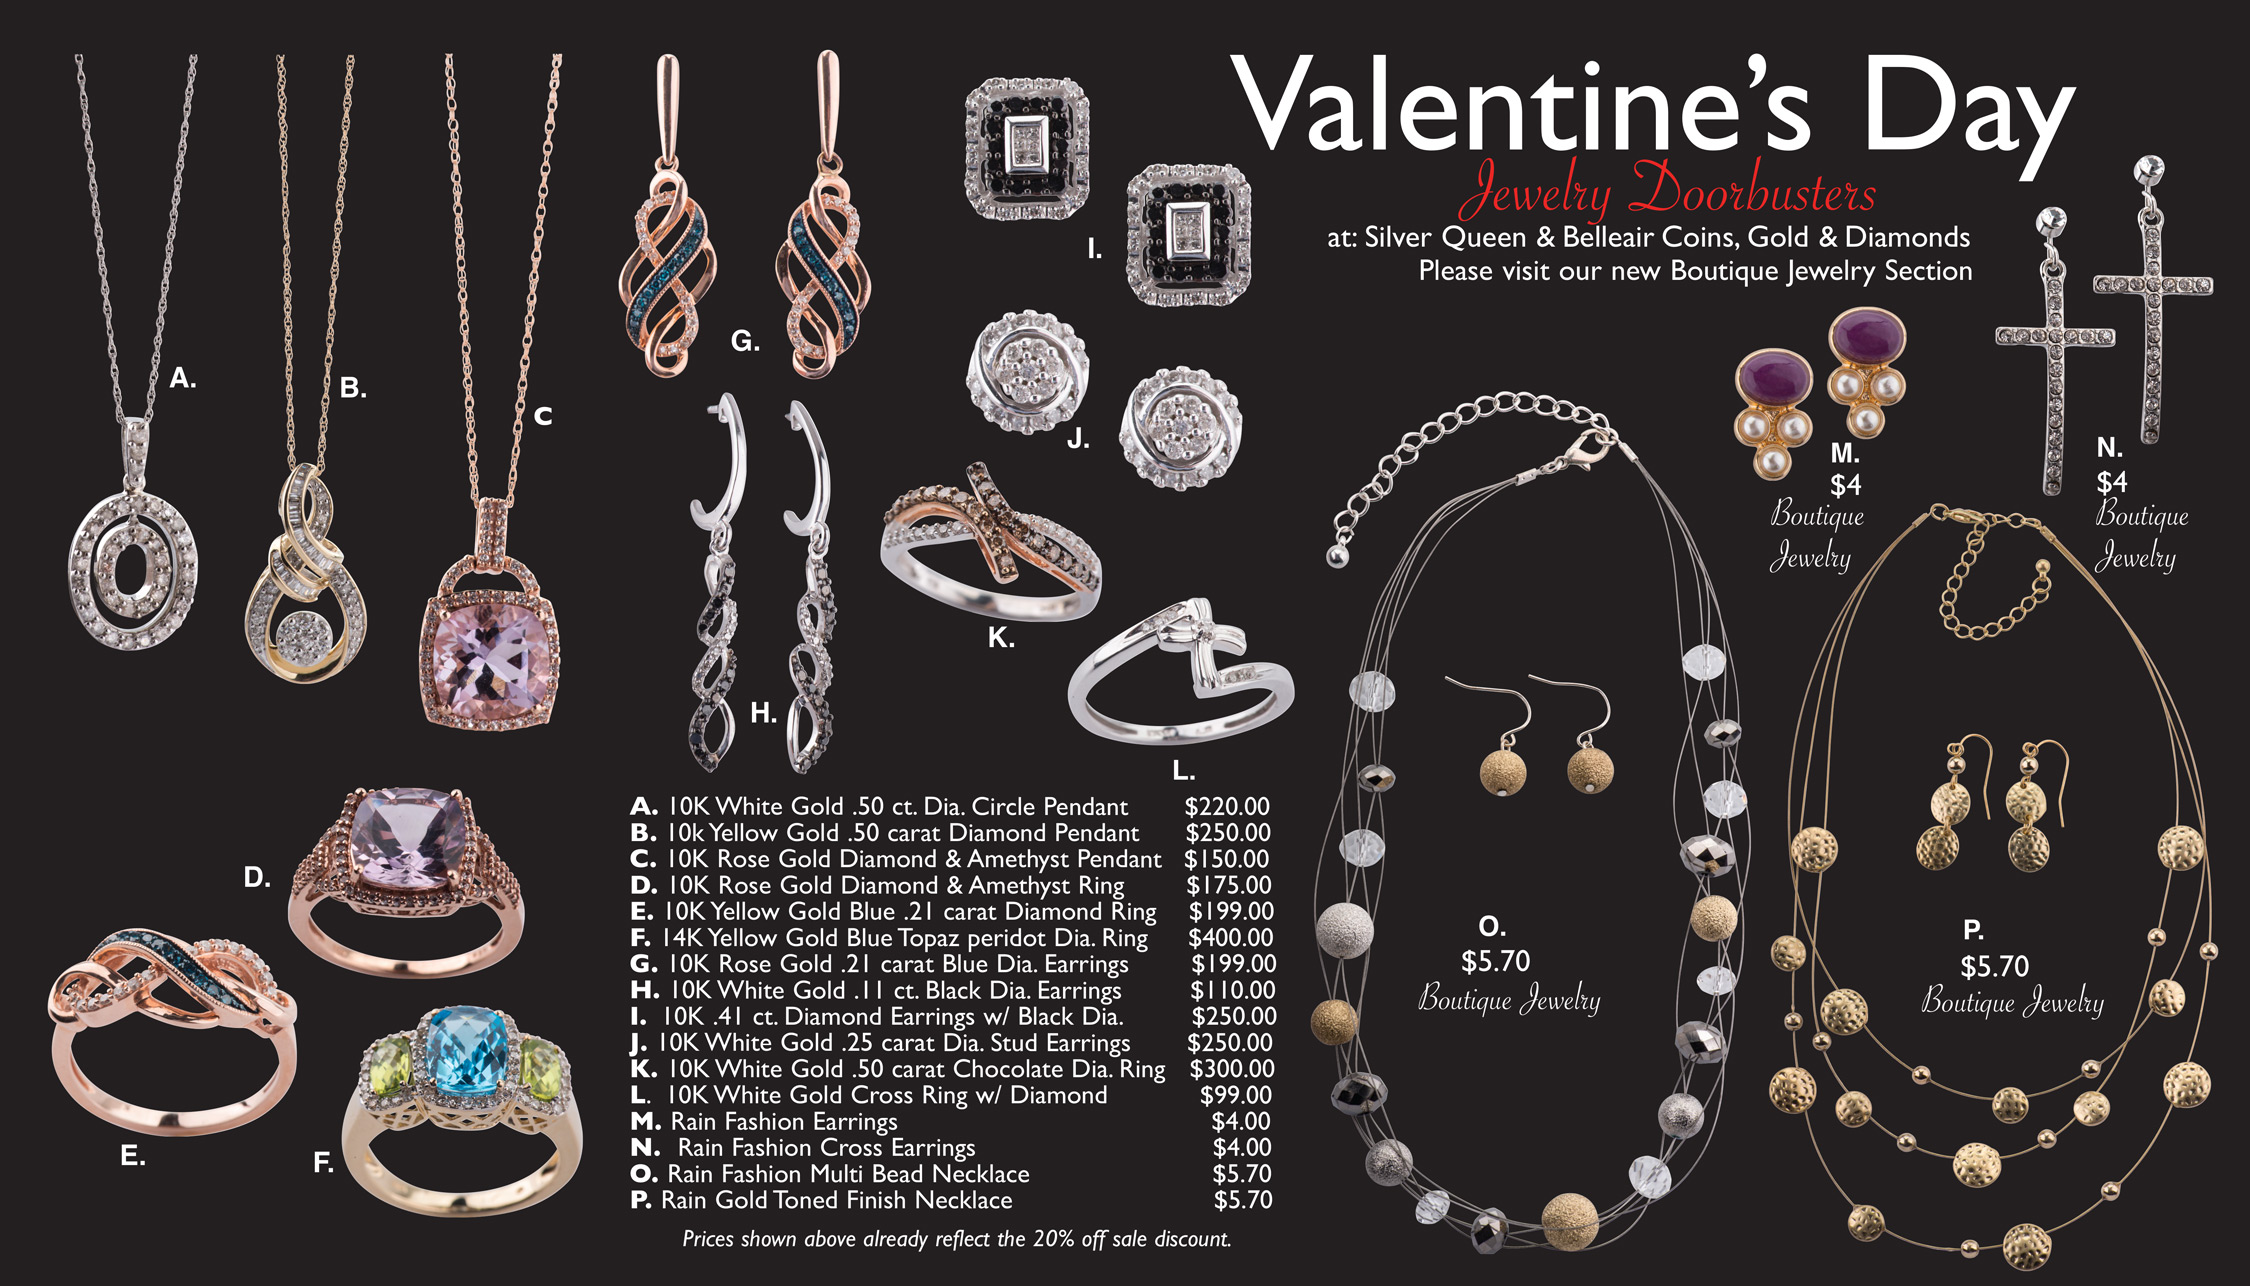 s valentine on enam valentines jewelry co startupcorner sale jewellery day